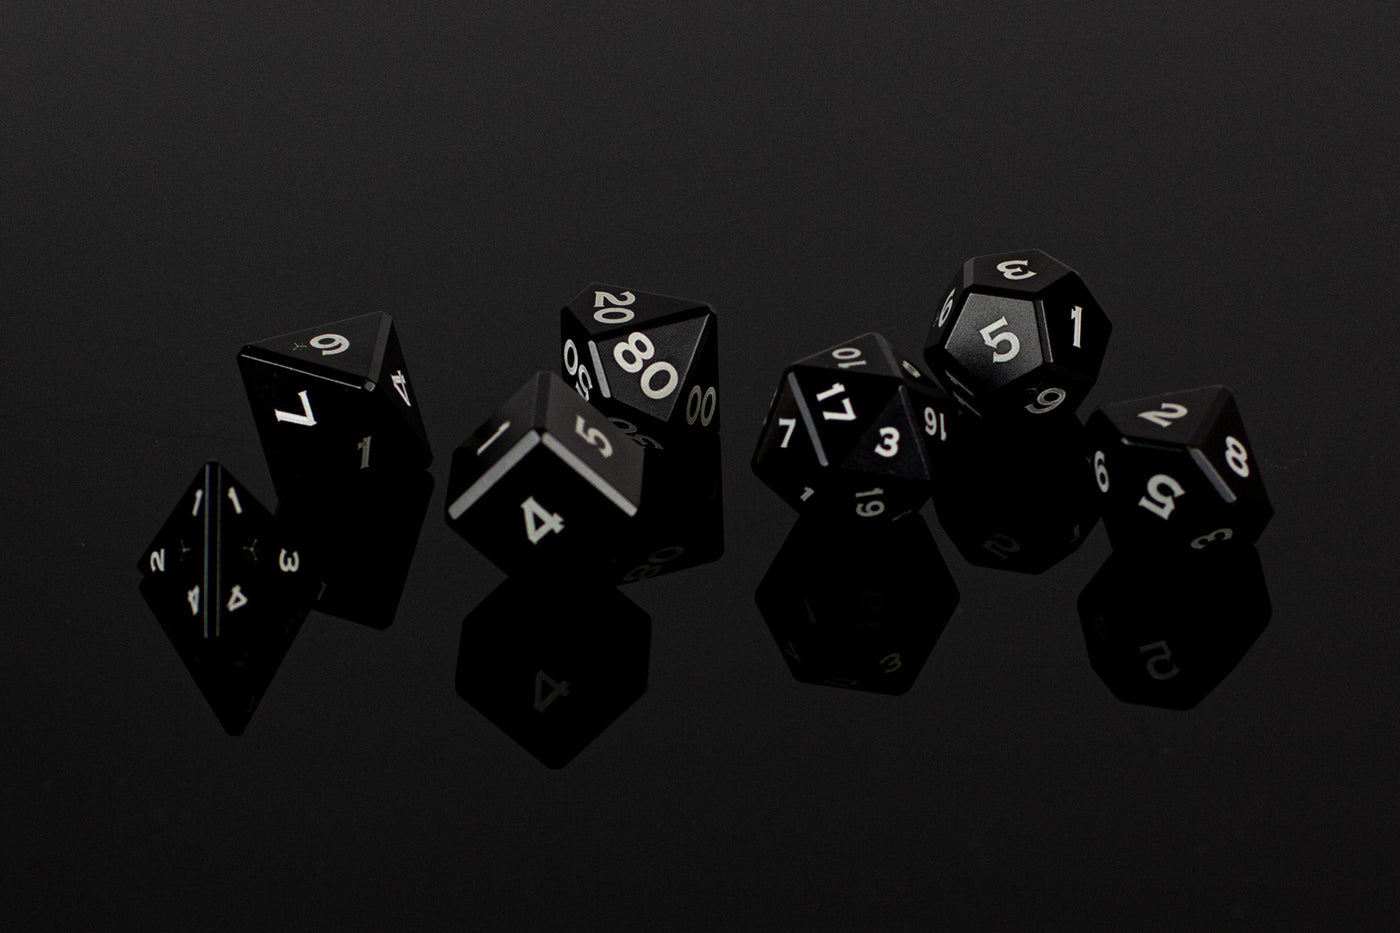 Metal Polyhedral RPG Dice Set - Black - GRAVITY DICE